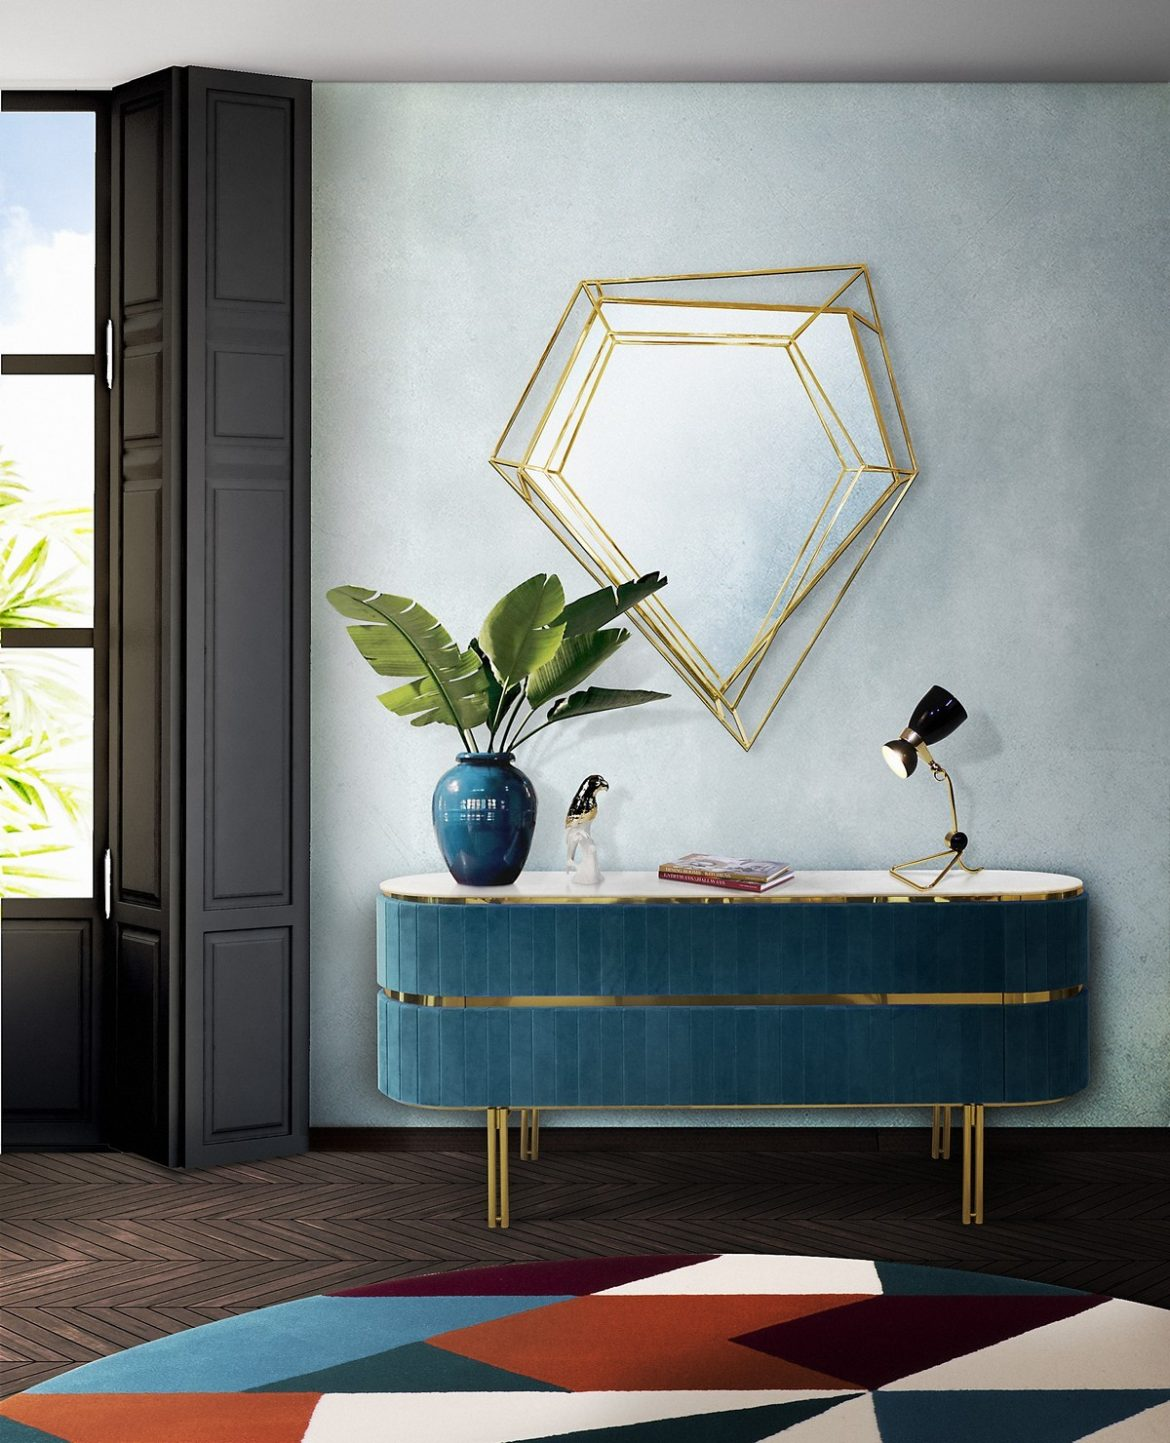 Exclusive Sideboards: When Vintage Meets Contemporary exclusive sideboards Exclusive Sideboards: When Vintage Meets Contemporary edith 1